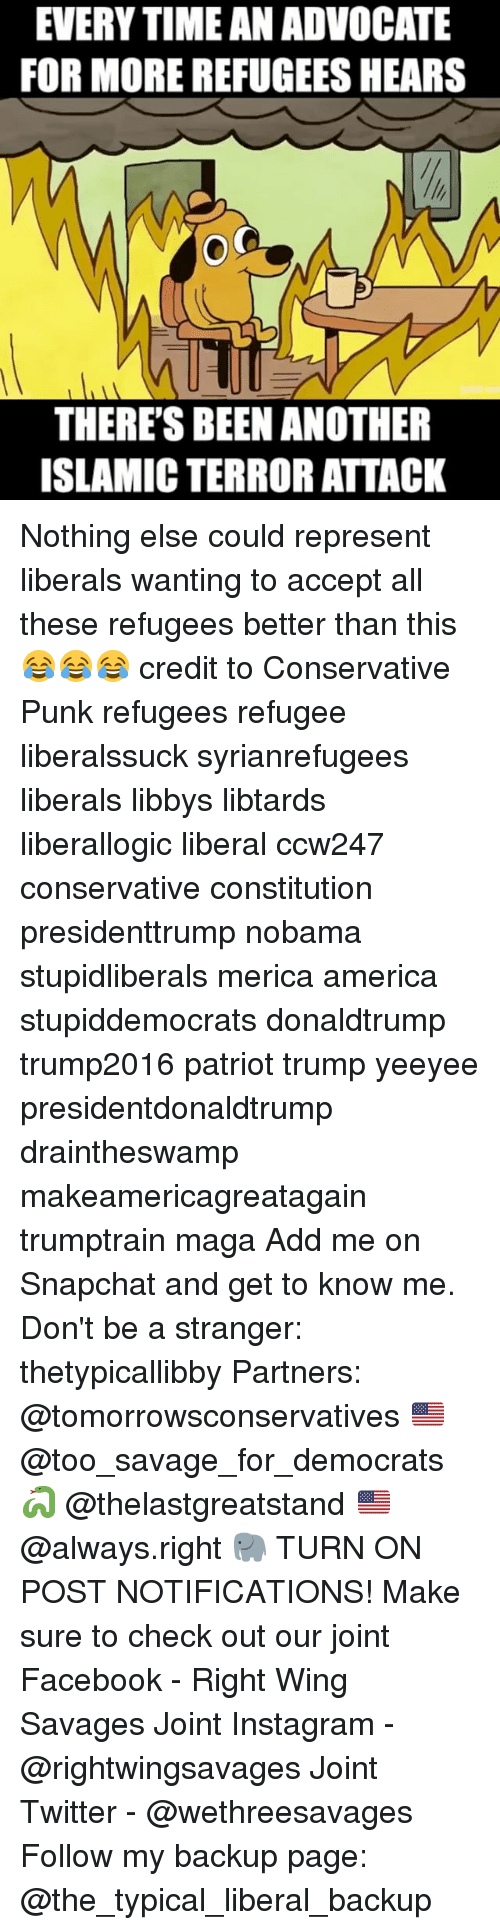 Constitution, Islam, and Wings: EVERYTIME AN ADVOCATE  FOR MORE REFUGEES HEARS  THERE'S BEEN ANOTHER  ISLAMIC TERROR ATTACK Nothing else could represent liberals wanting to accept all these refugees better than this 😂😂😂 credit to Conservative Punk refugees refugee liberalssuck syrianrefugees liberals libbys libtards liberallogic liberal ccw247 conservative constitution presidenttrump nobama stupidliberals merica america stupiddemocrats donaldtrump trump2016 patriot trump yeeyee presidentdonaldtrump draintheswamp makeamericagreatagain trumptrain maga Add me on Snapchat and get to know me. Don't be a stranger: thetypicallibby Partners: @tomorrowsconservatives 🇺🇸 @too_savage_for_democrats 🐍 @thelastgreatstand 🇺🇸 @always.right 🐘 TURN ON POST NOTIFICATIONS! Make sure to check out our joint Facebook - Right Wing Savages Joint Instagram - @rightwingsavages Joint Twitter - @wethreesavages Follow my backup page: @the_typical_liberal_backup